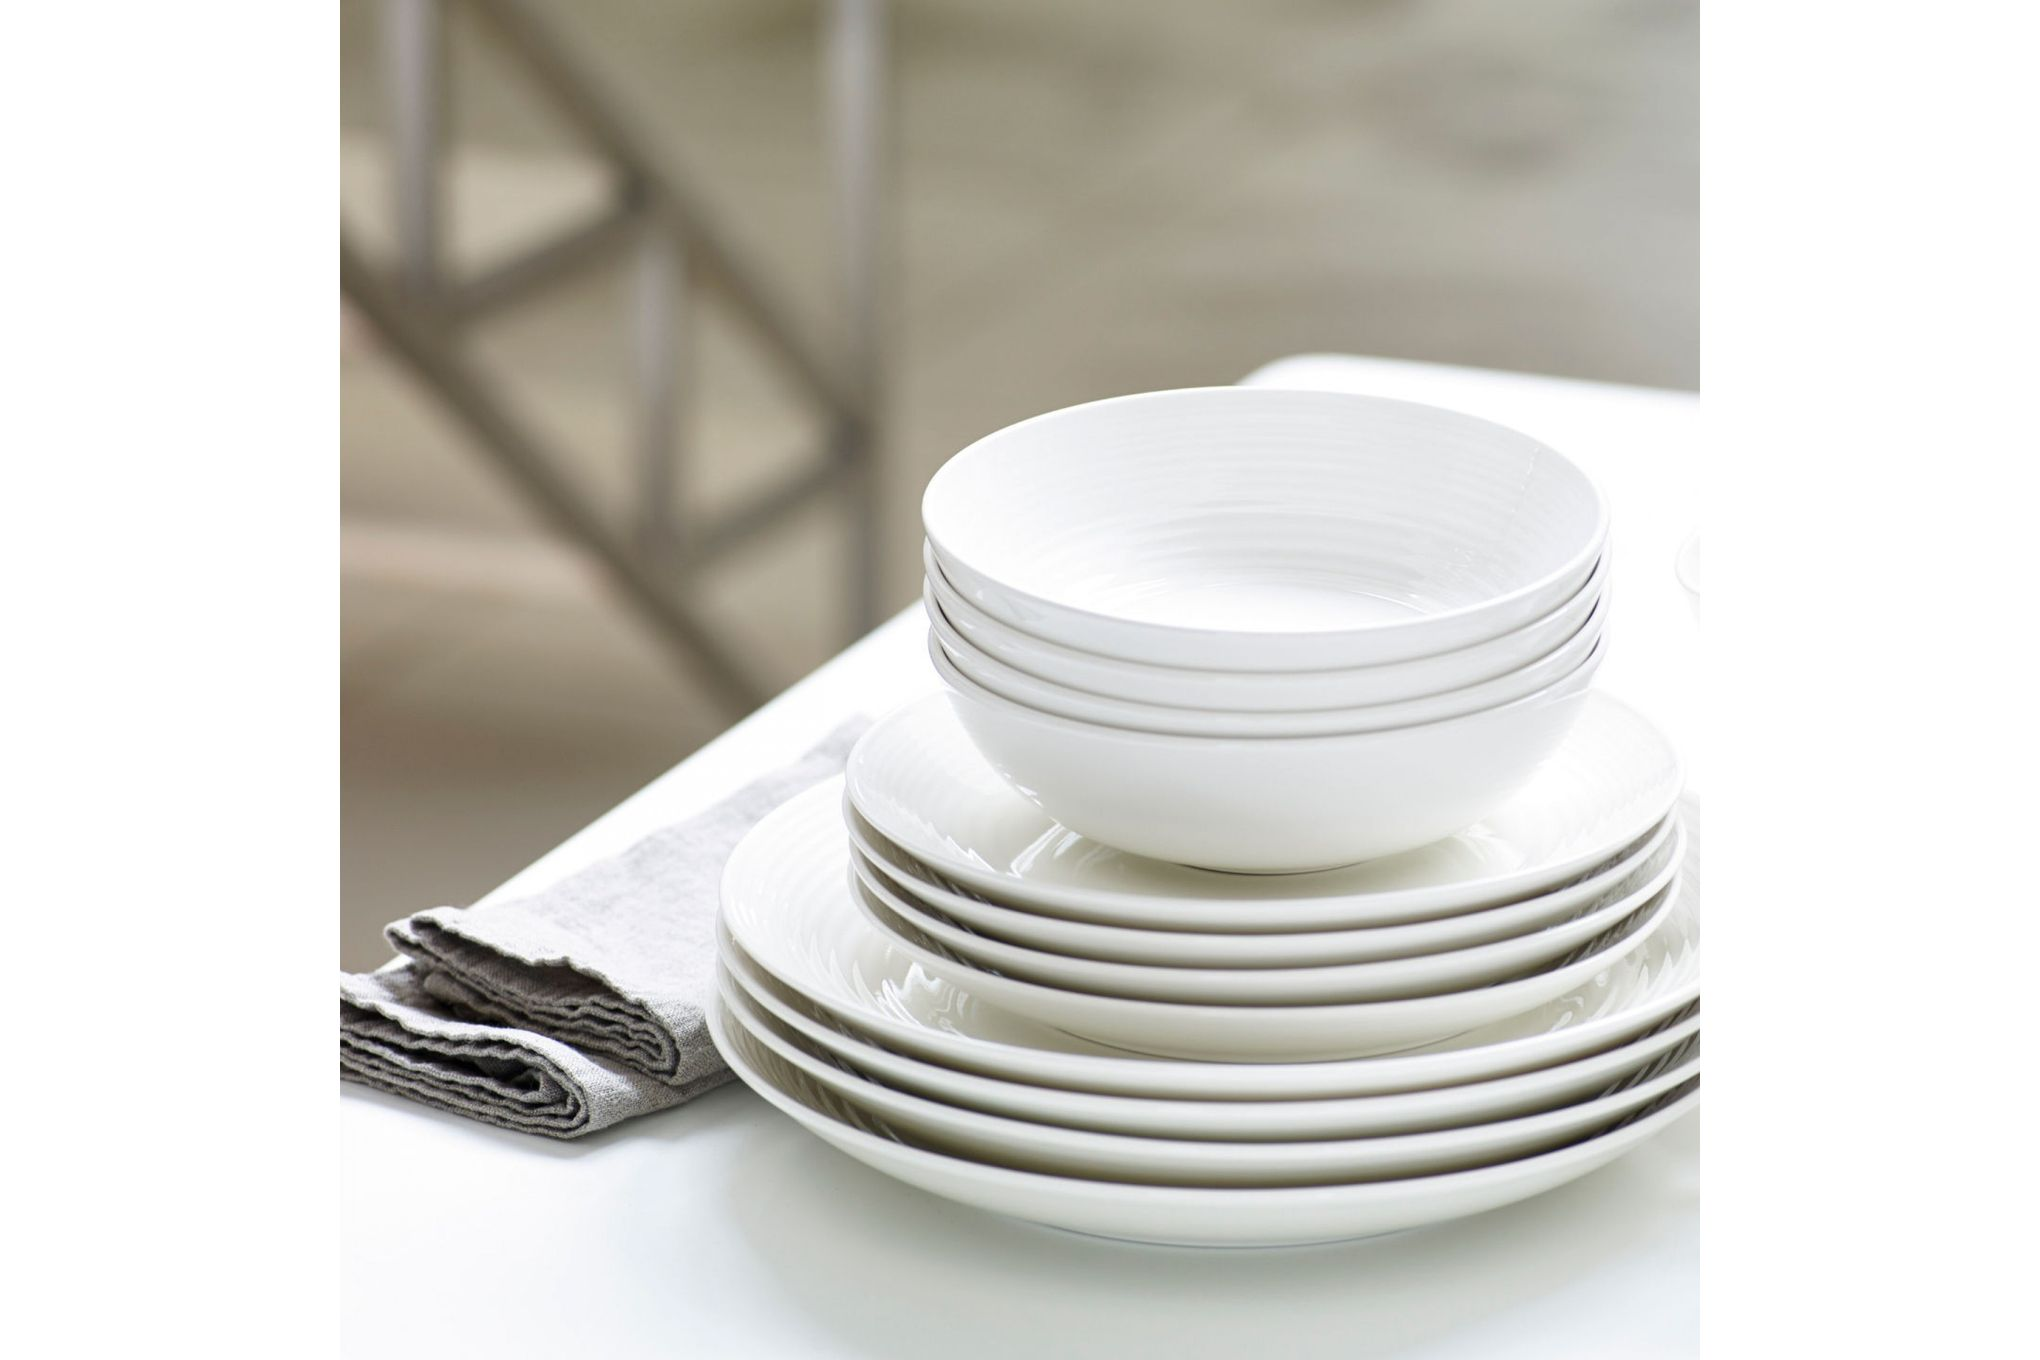 Gordon Ramsay for Royal Doulton Maze White 12 Piece Set 4 x Plate 28cm & 22cm, 4 x Bowl 18cm thumb 2